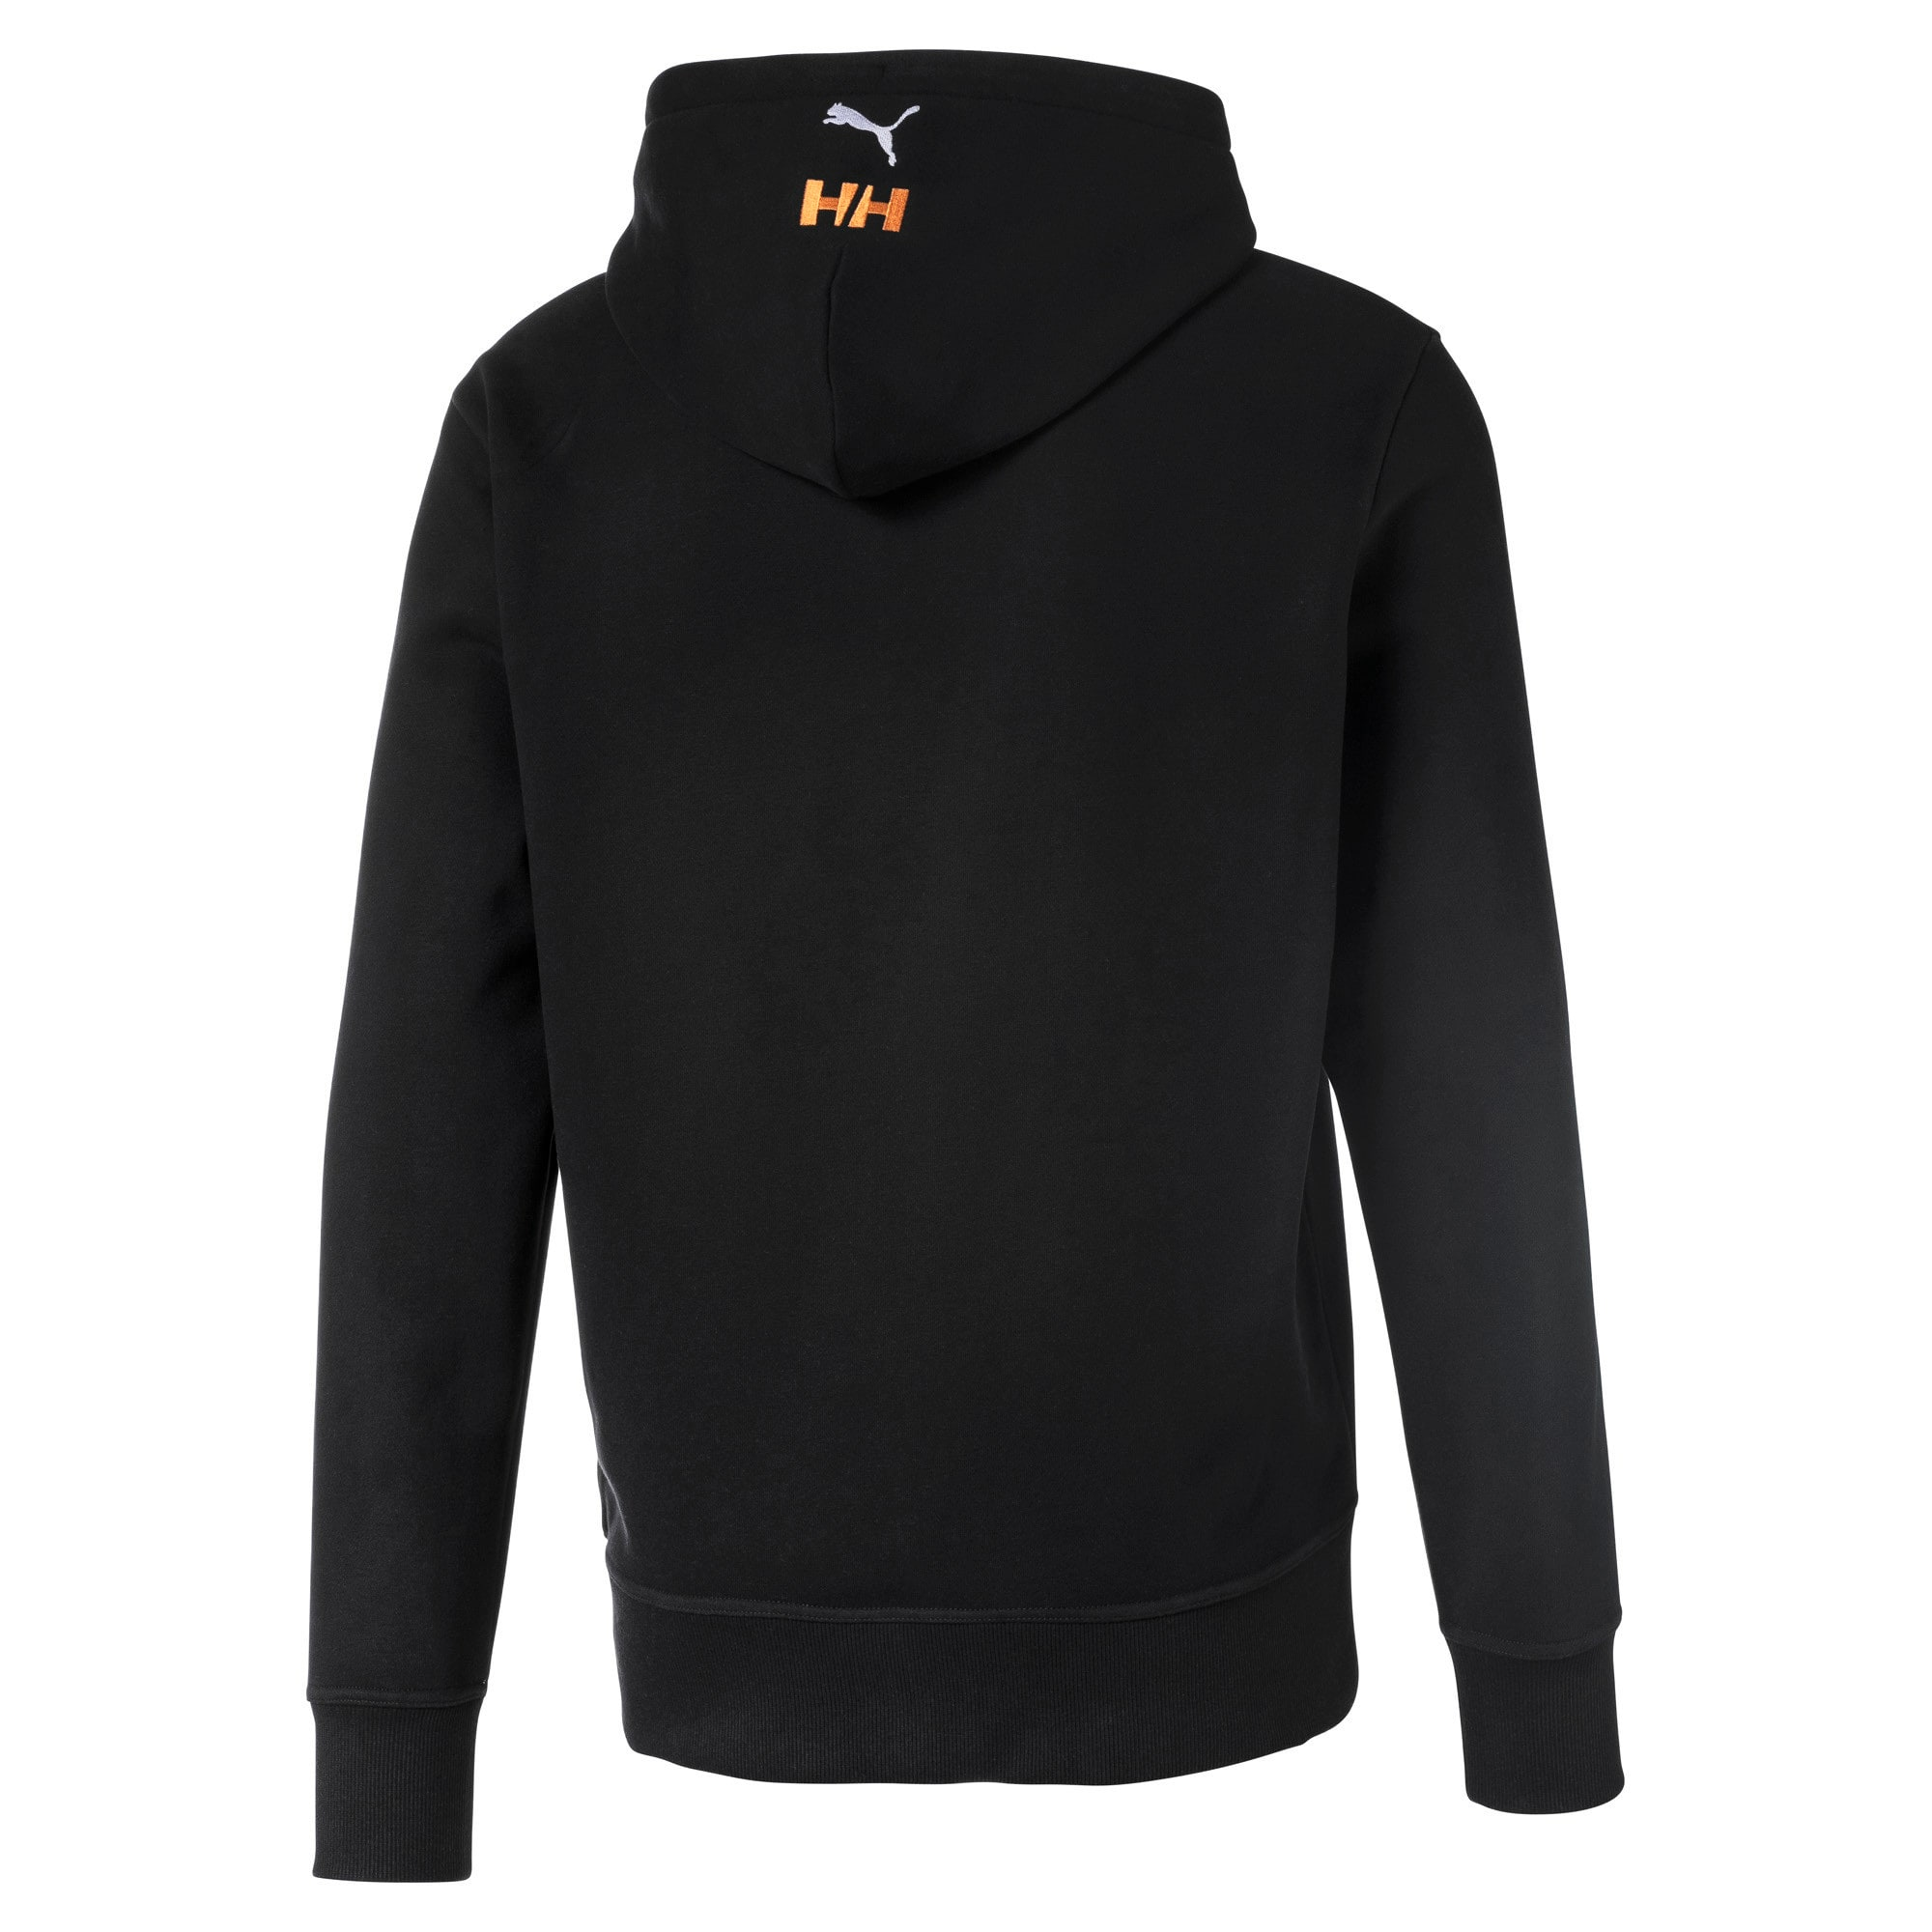 Thumbnail 2 of PUMA x HELLY HANSEN Long Sleeve Hoodie, Puma Black, medium